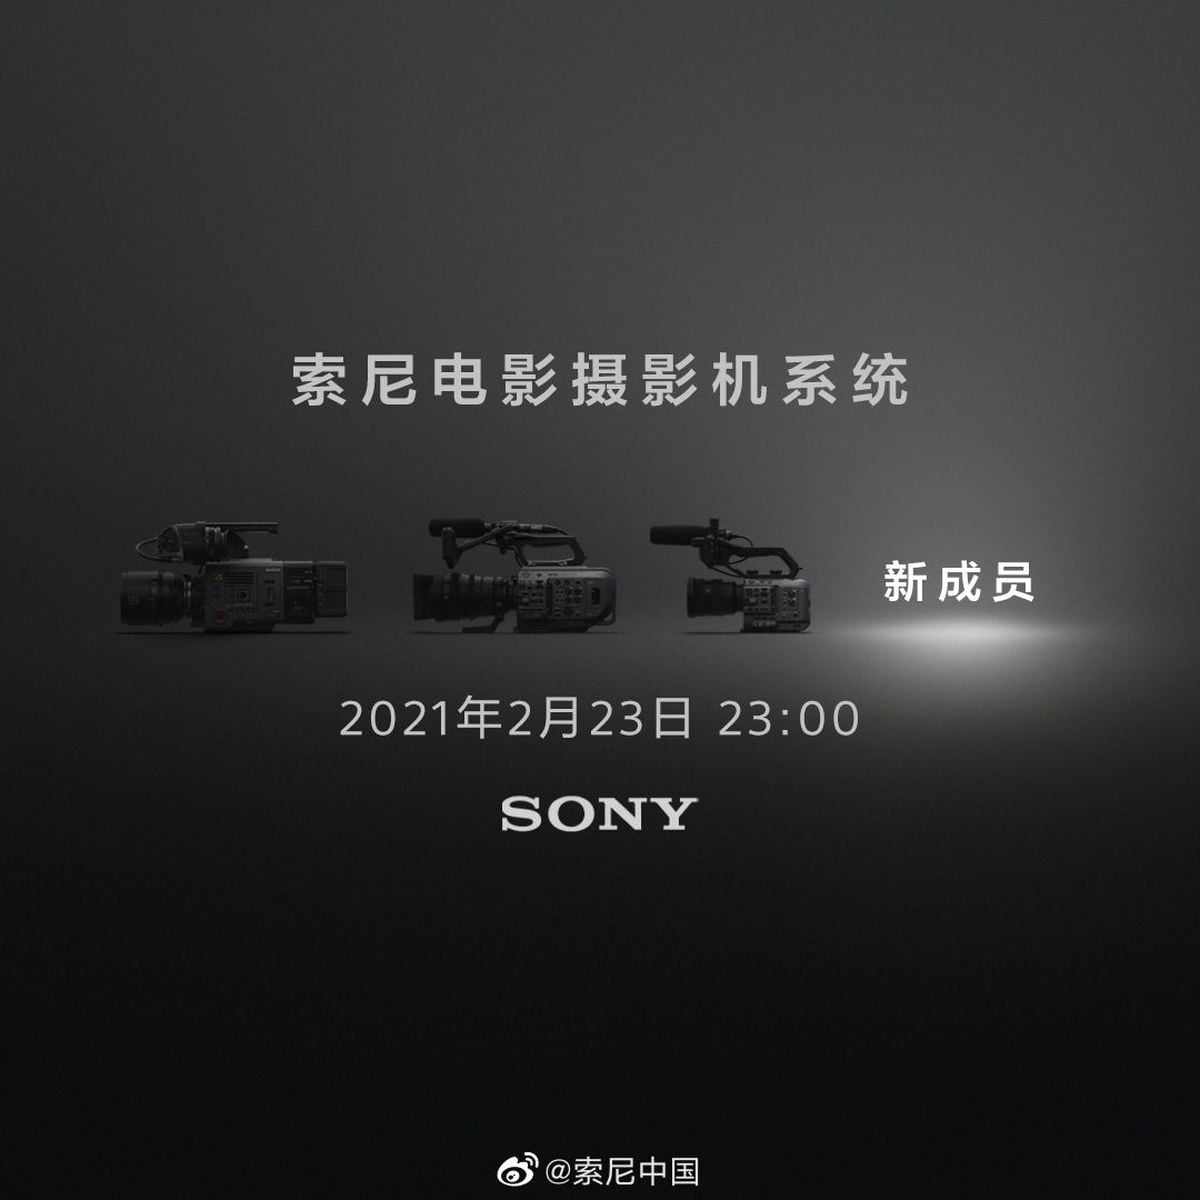 Sony Movie Camera System will be released on February 23